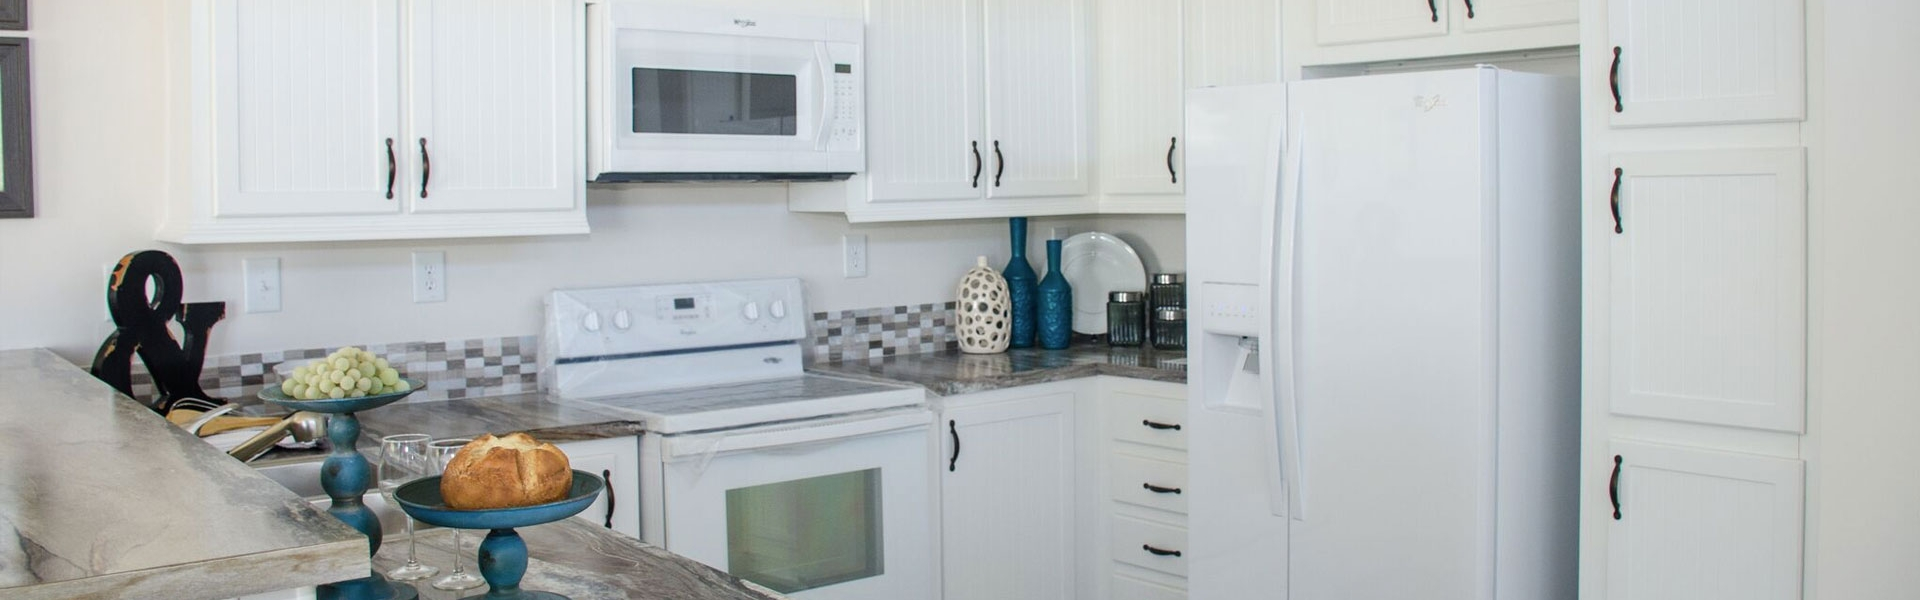 Whitehouse Cove   All Age Manufactured Home Community